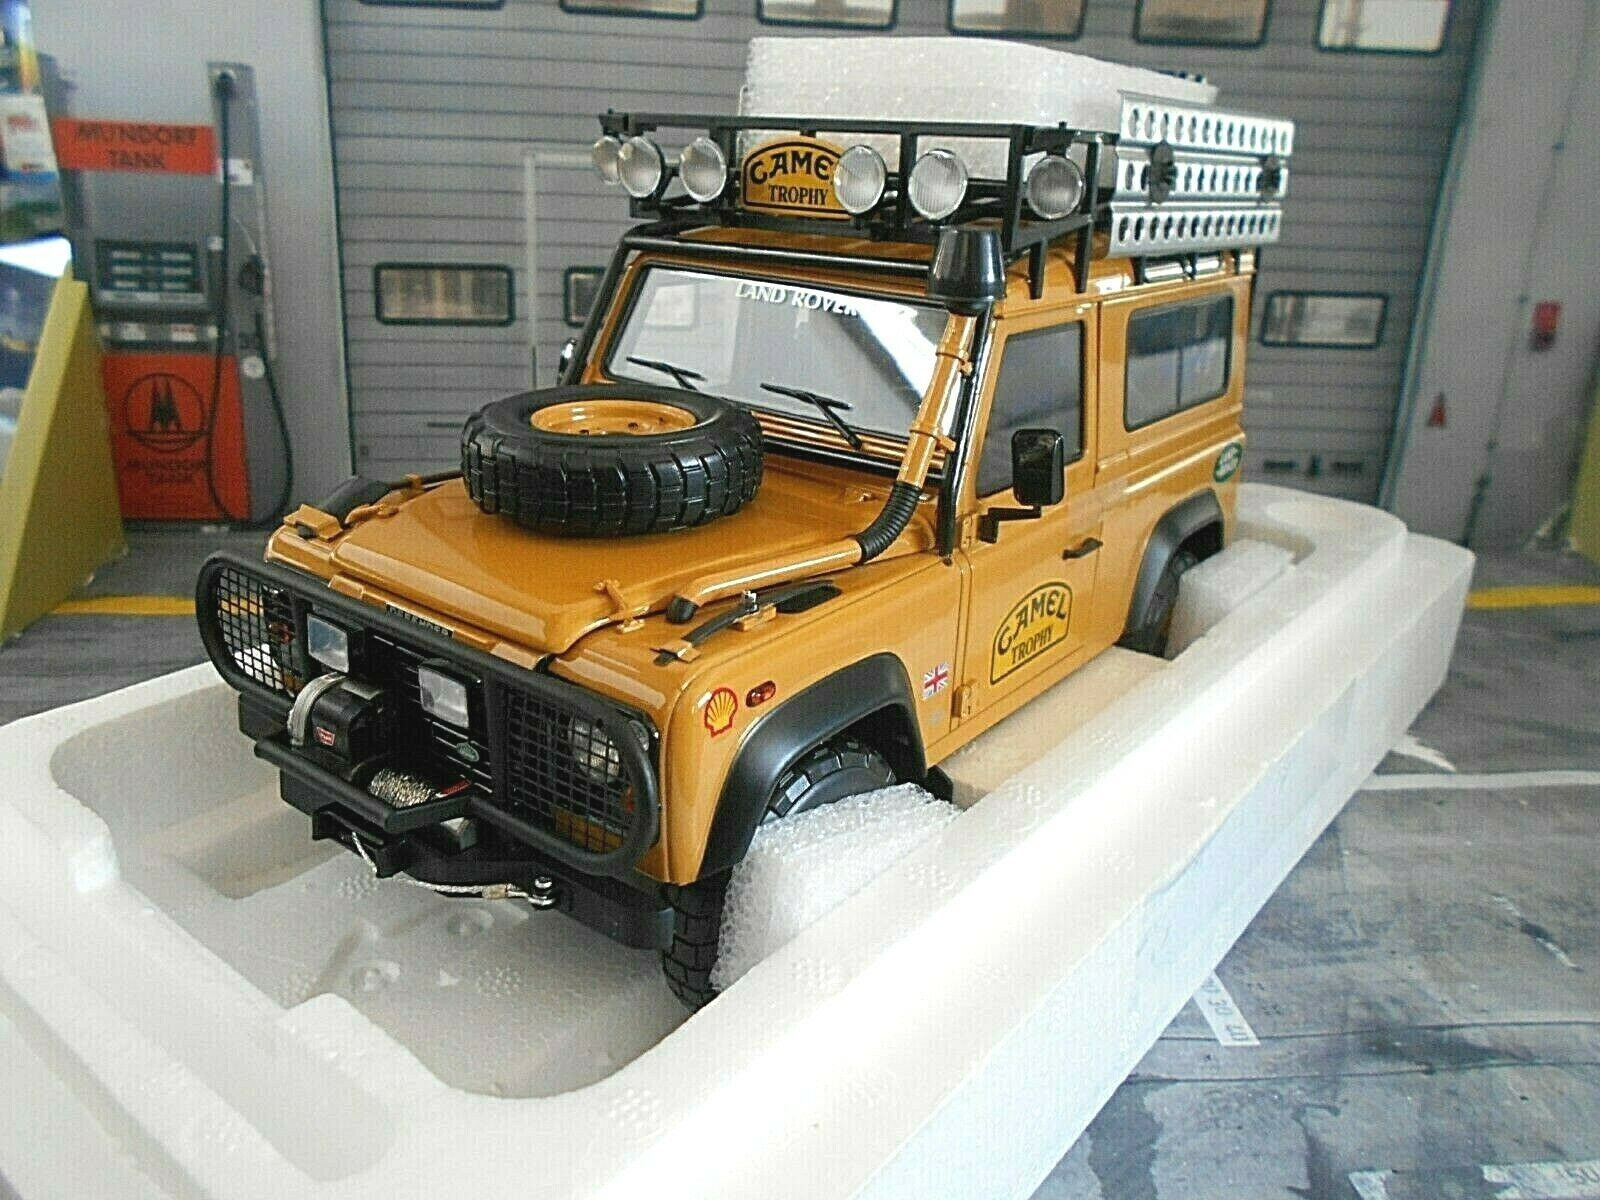 LAND ROVER Defender 90 4x4 Camel Trophy Edition Almost Real Diecast Highend 1 18